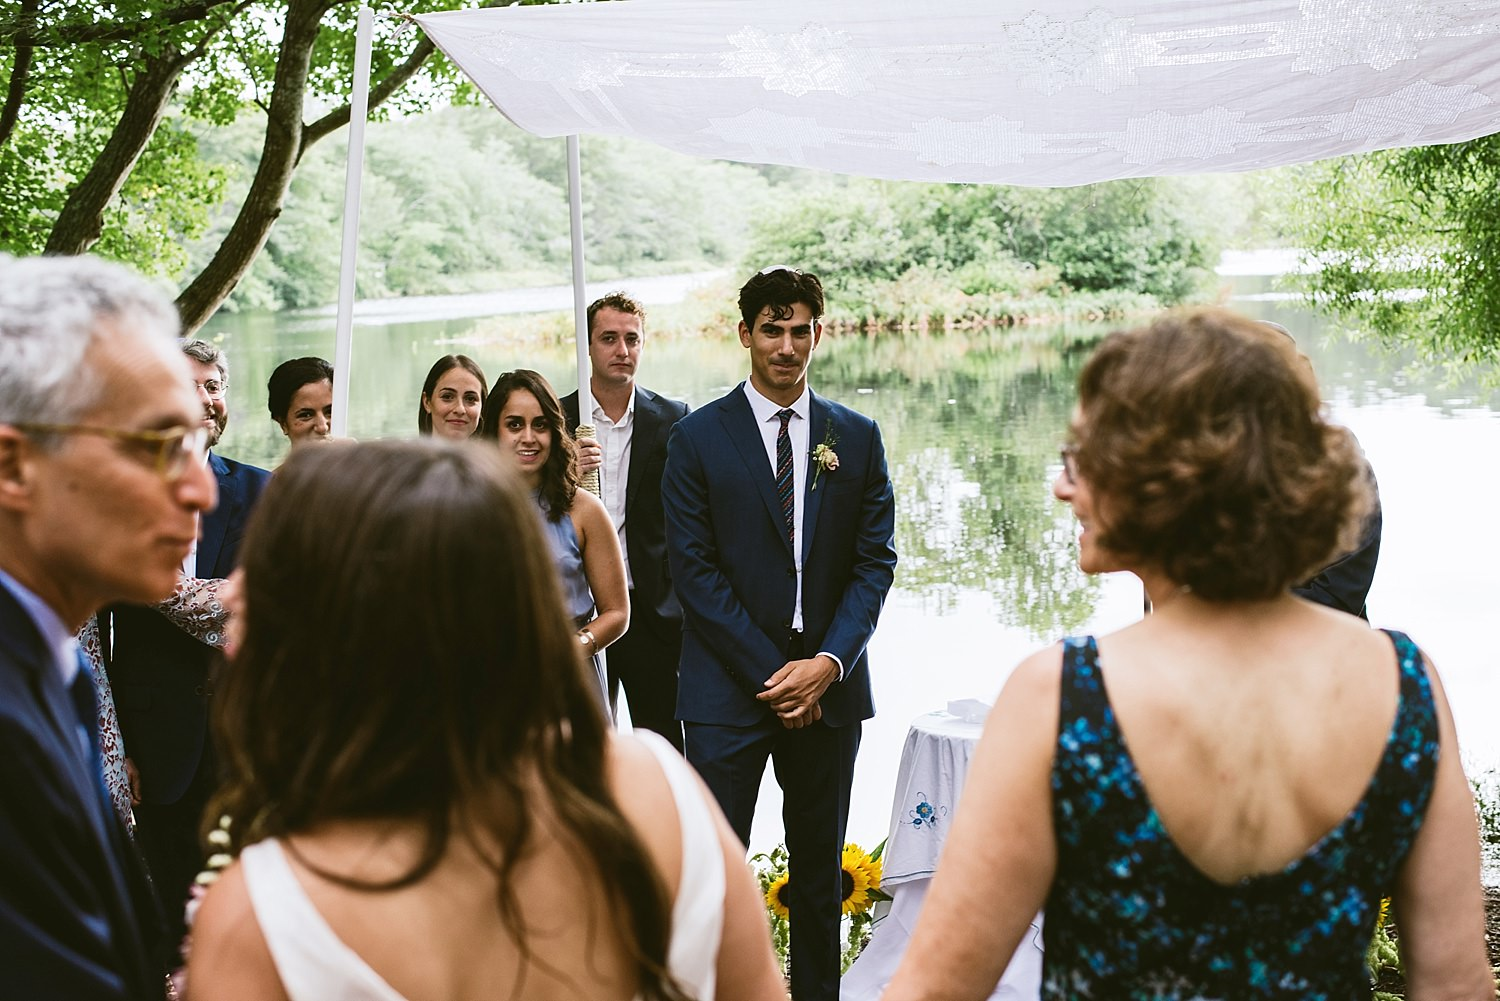 Grooms face as bride walks down the isle